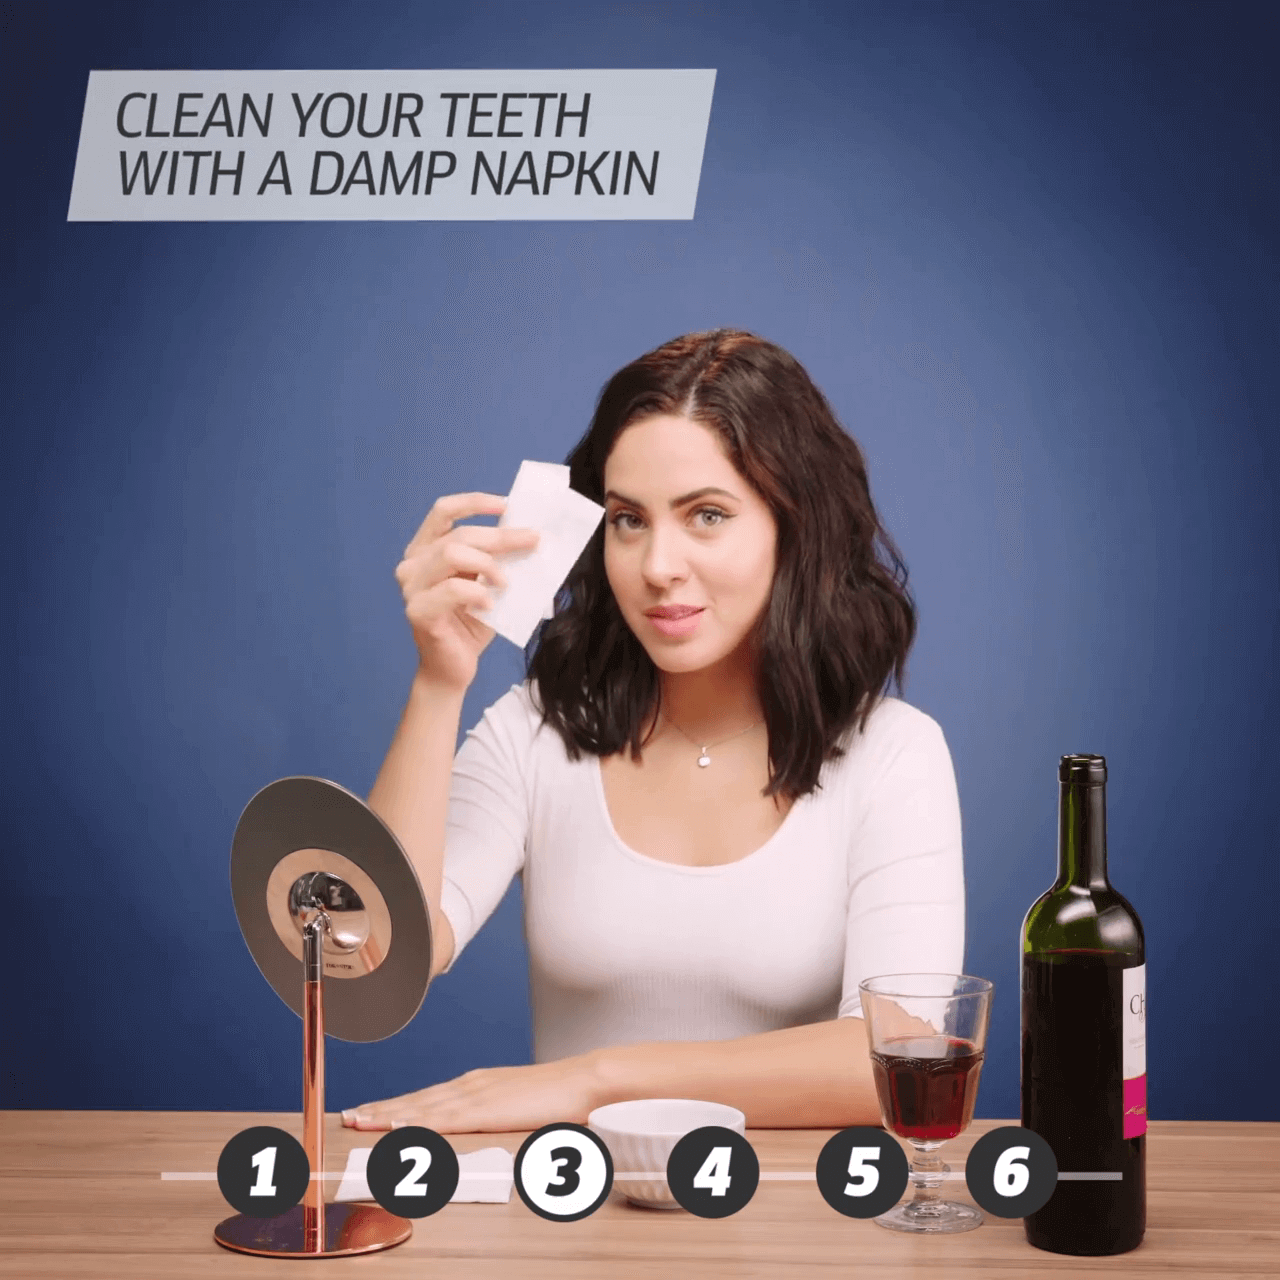 Tips To Prevent Stained Teeth